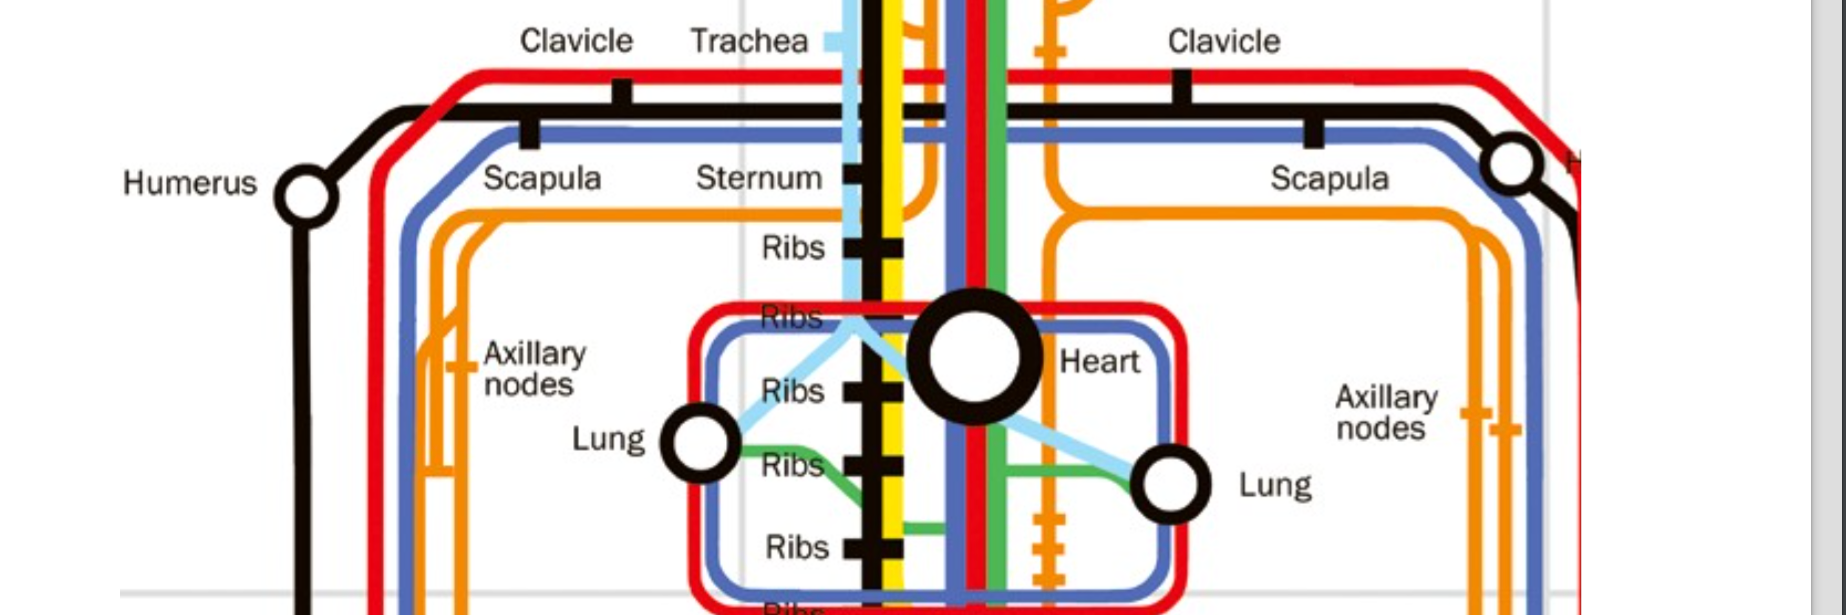 A Smart subway-styled diagram shows the human body as a smart city | inverse